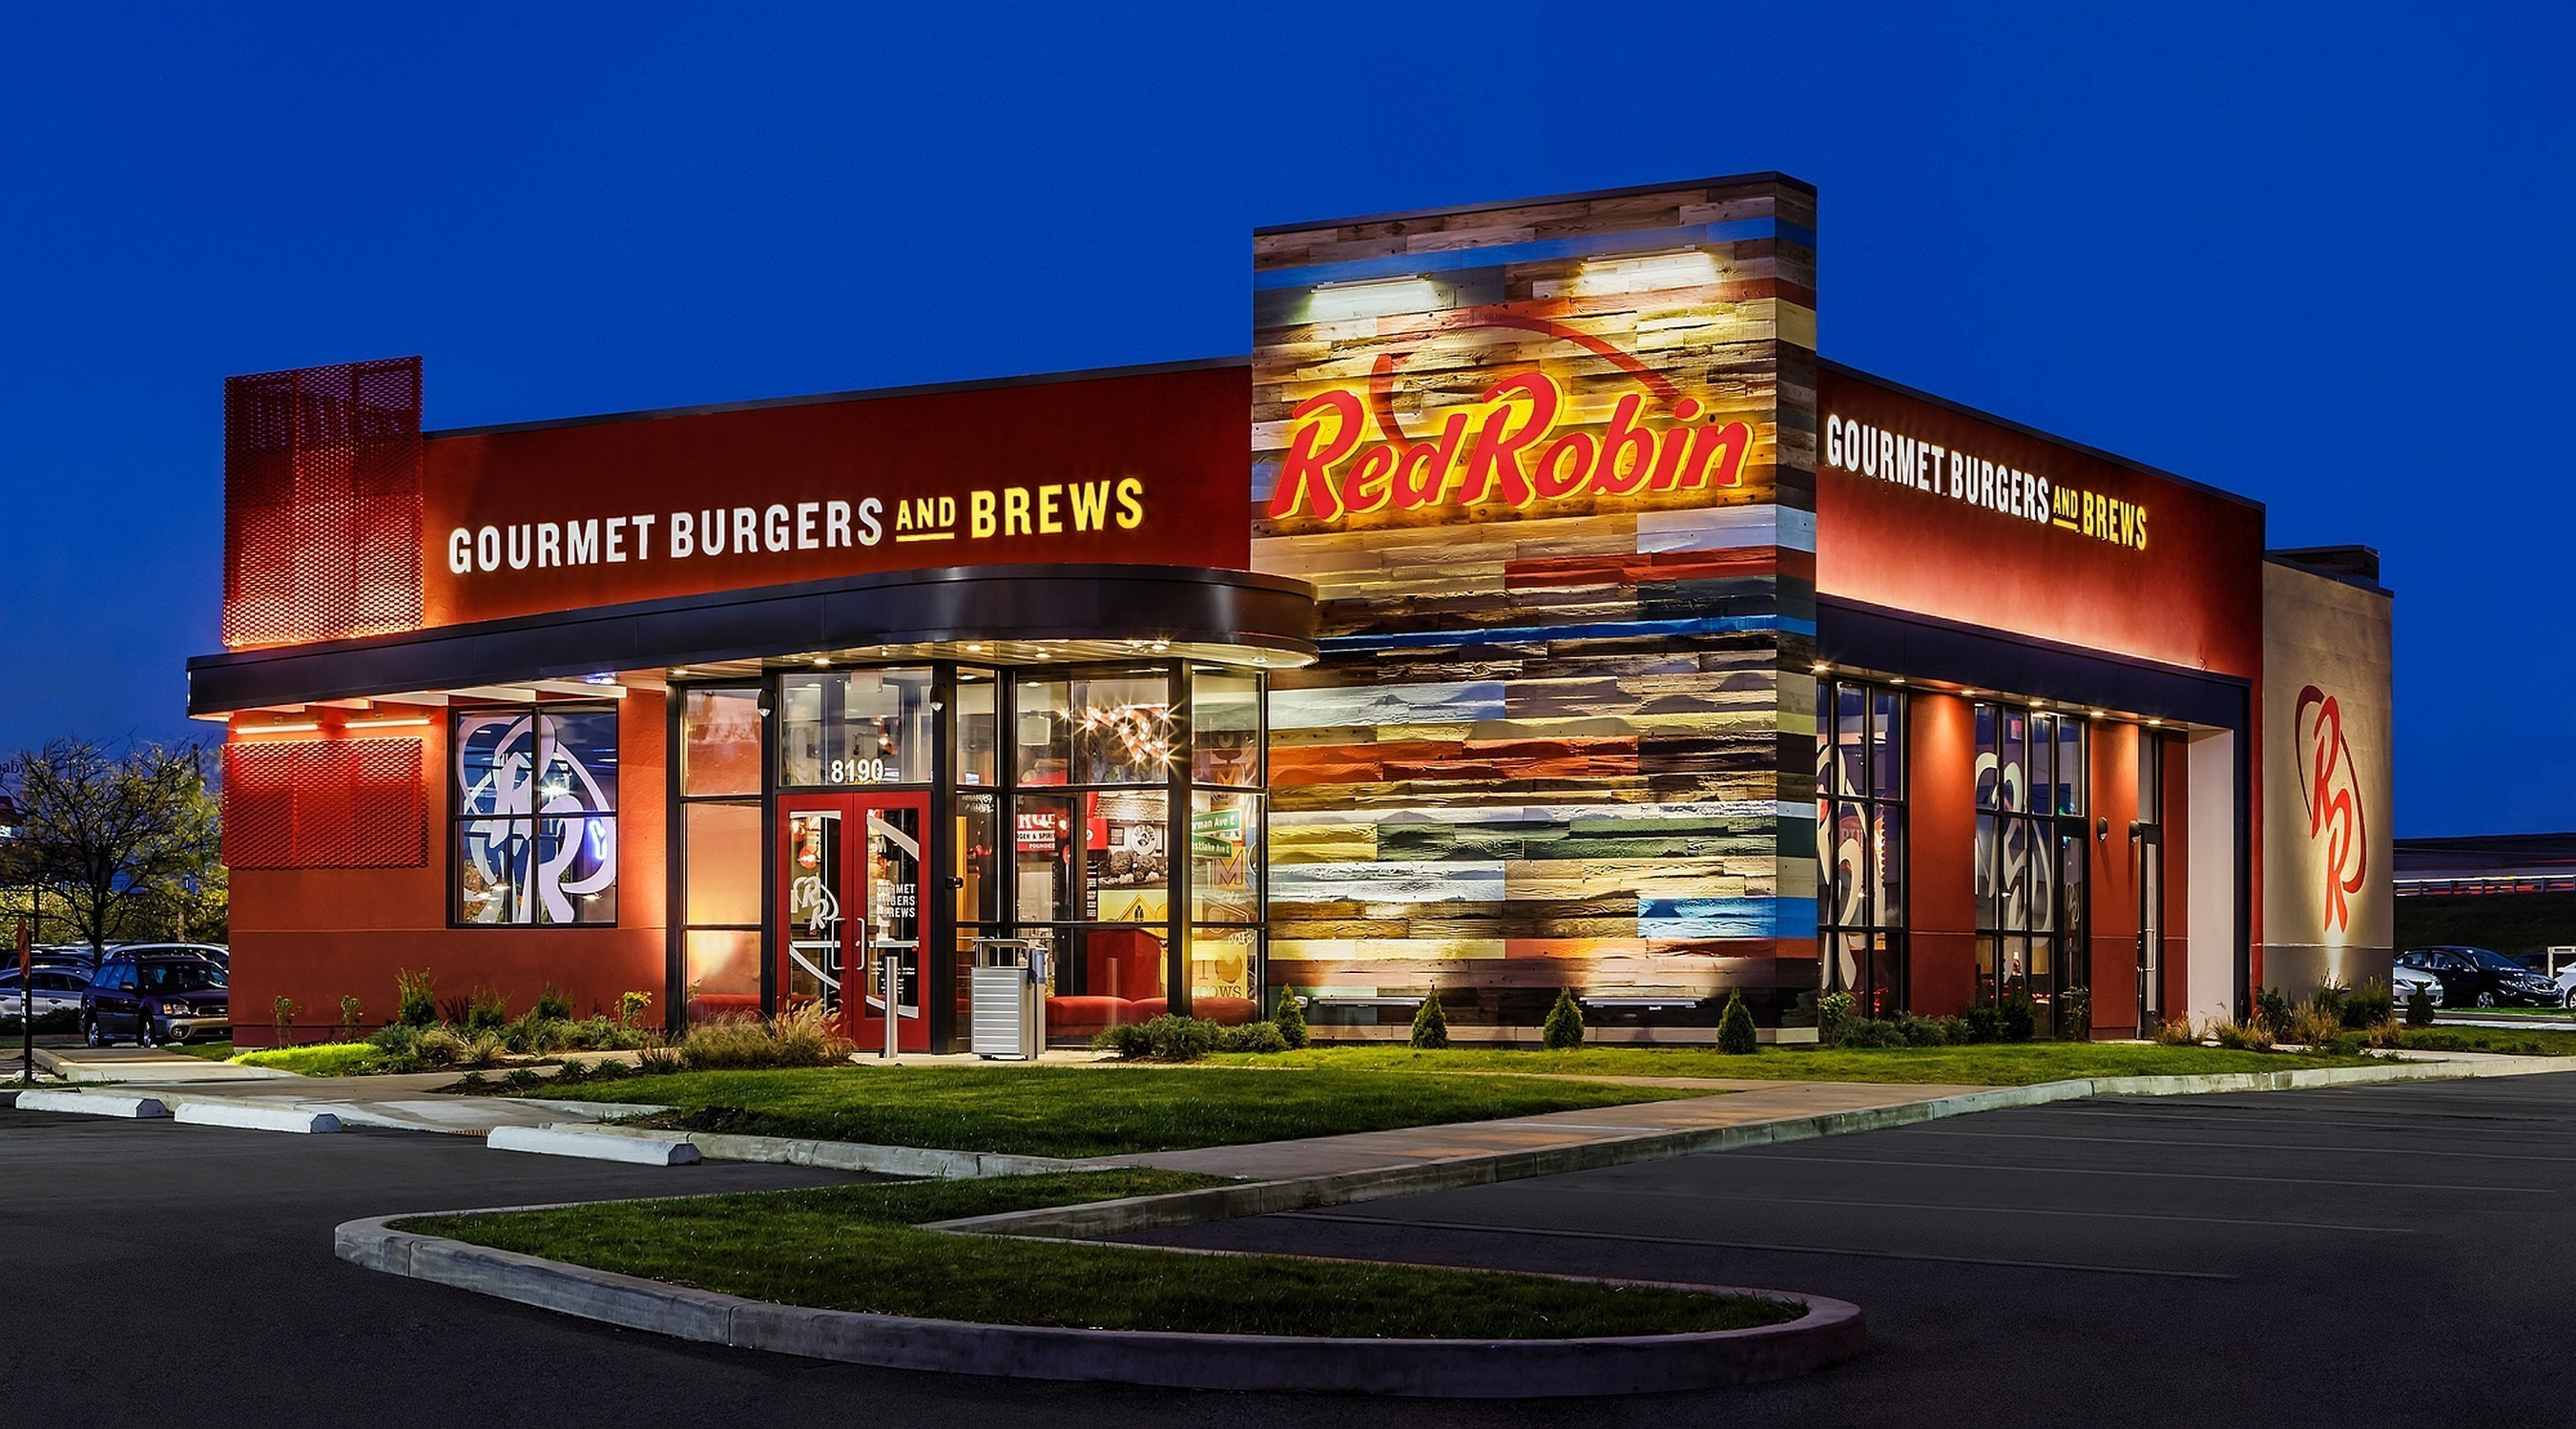 Red Robin Gourmet Burgers and Brews restaurant exterior. Red Robin Gourmet Burgers and Brews is a casual dining restaurant chain famous for serving more than two dozen craveable, high-quality burgers with Bottomless Steak Fries in a fun environment welcoming to guests of all ages. (C)2015 balloggphoto.com (PRNewsFoto/Red Robin Gourmet Burgers, Inc.)